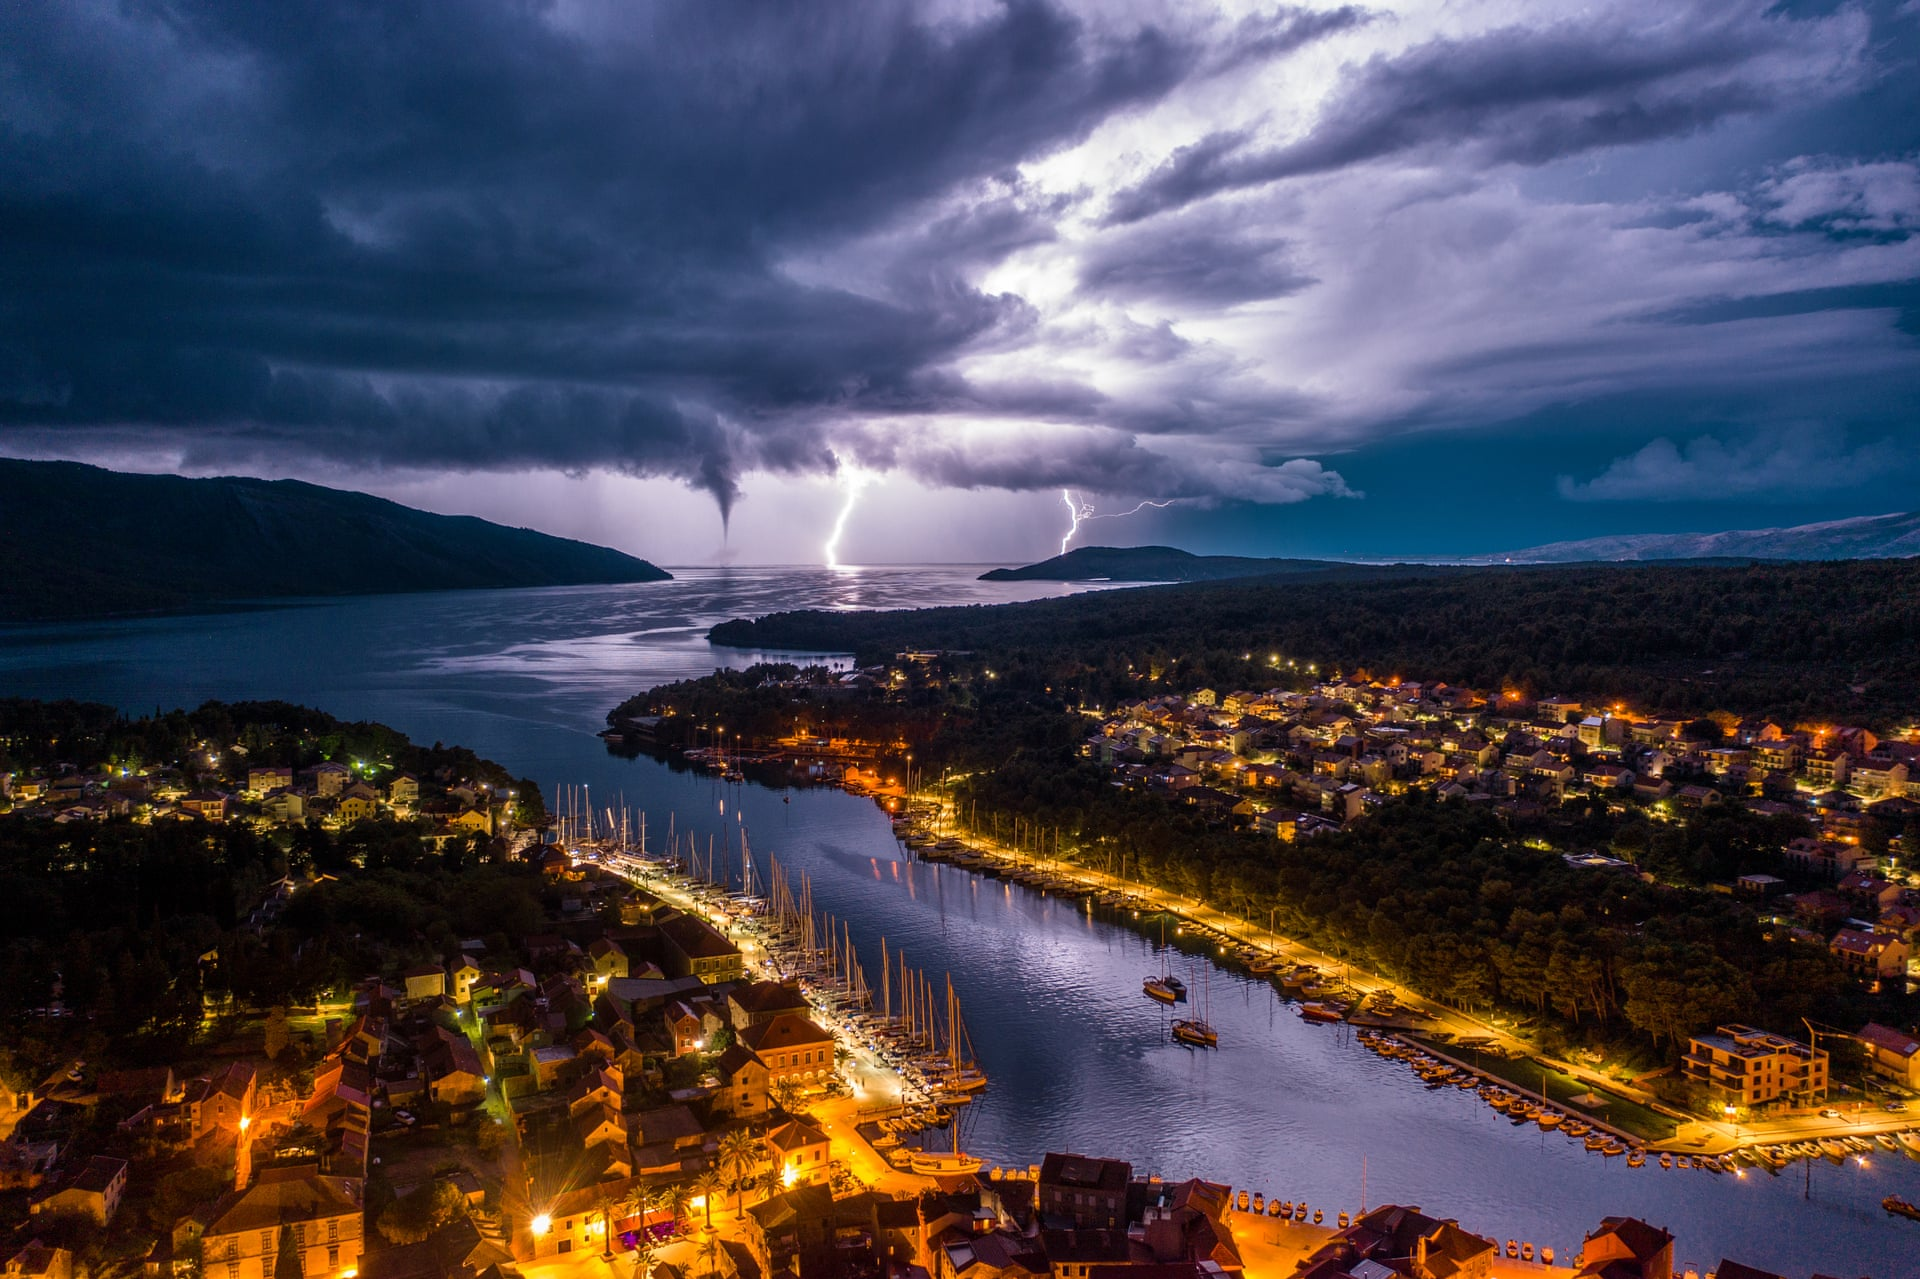 Wild Night in the Adriatic| Nature CommendedStari Grad, on Hvar Island, with fork lightning and a waterspout on the open seaPhotograph: Miroslav Zadravec/Drone Photography Awards 2021